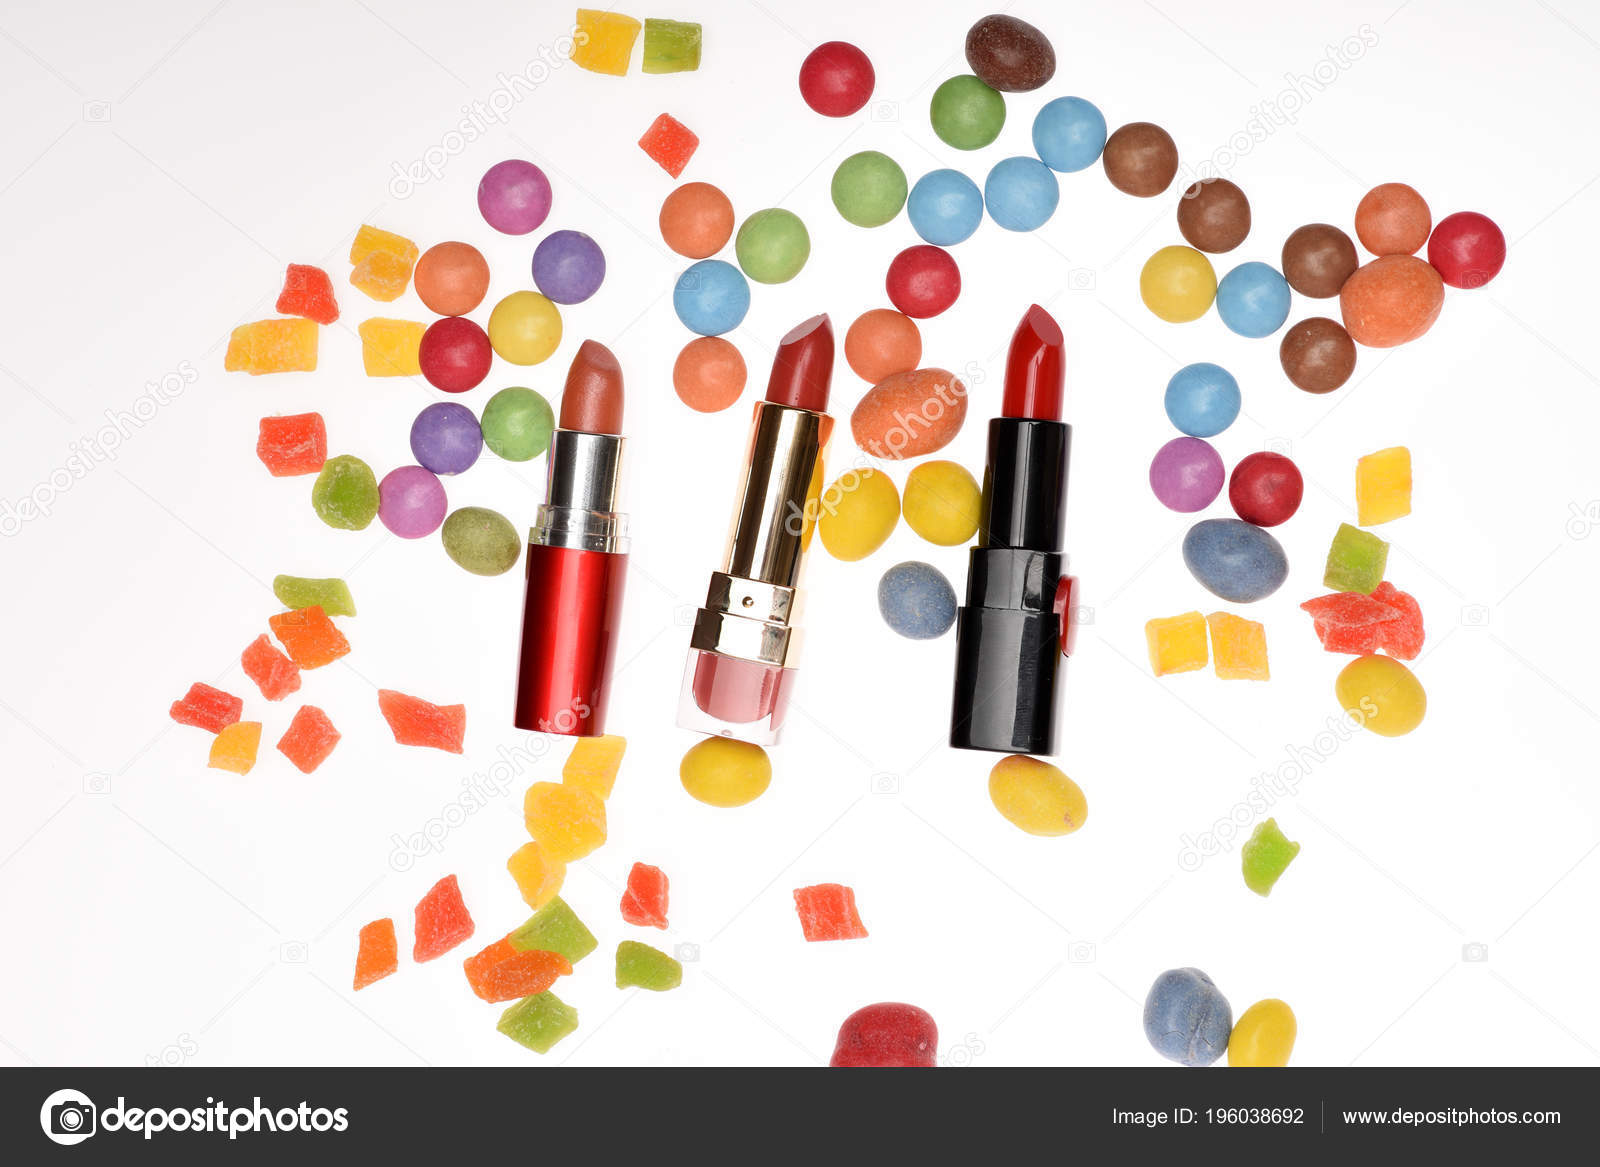 Red lipsticks, sweets, dragee, candy, candied fruit, confetti